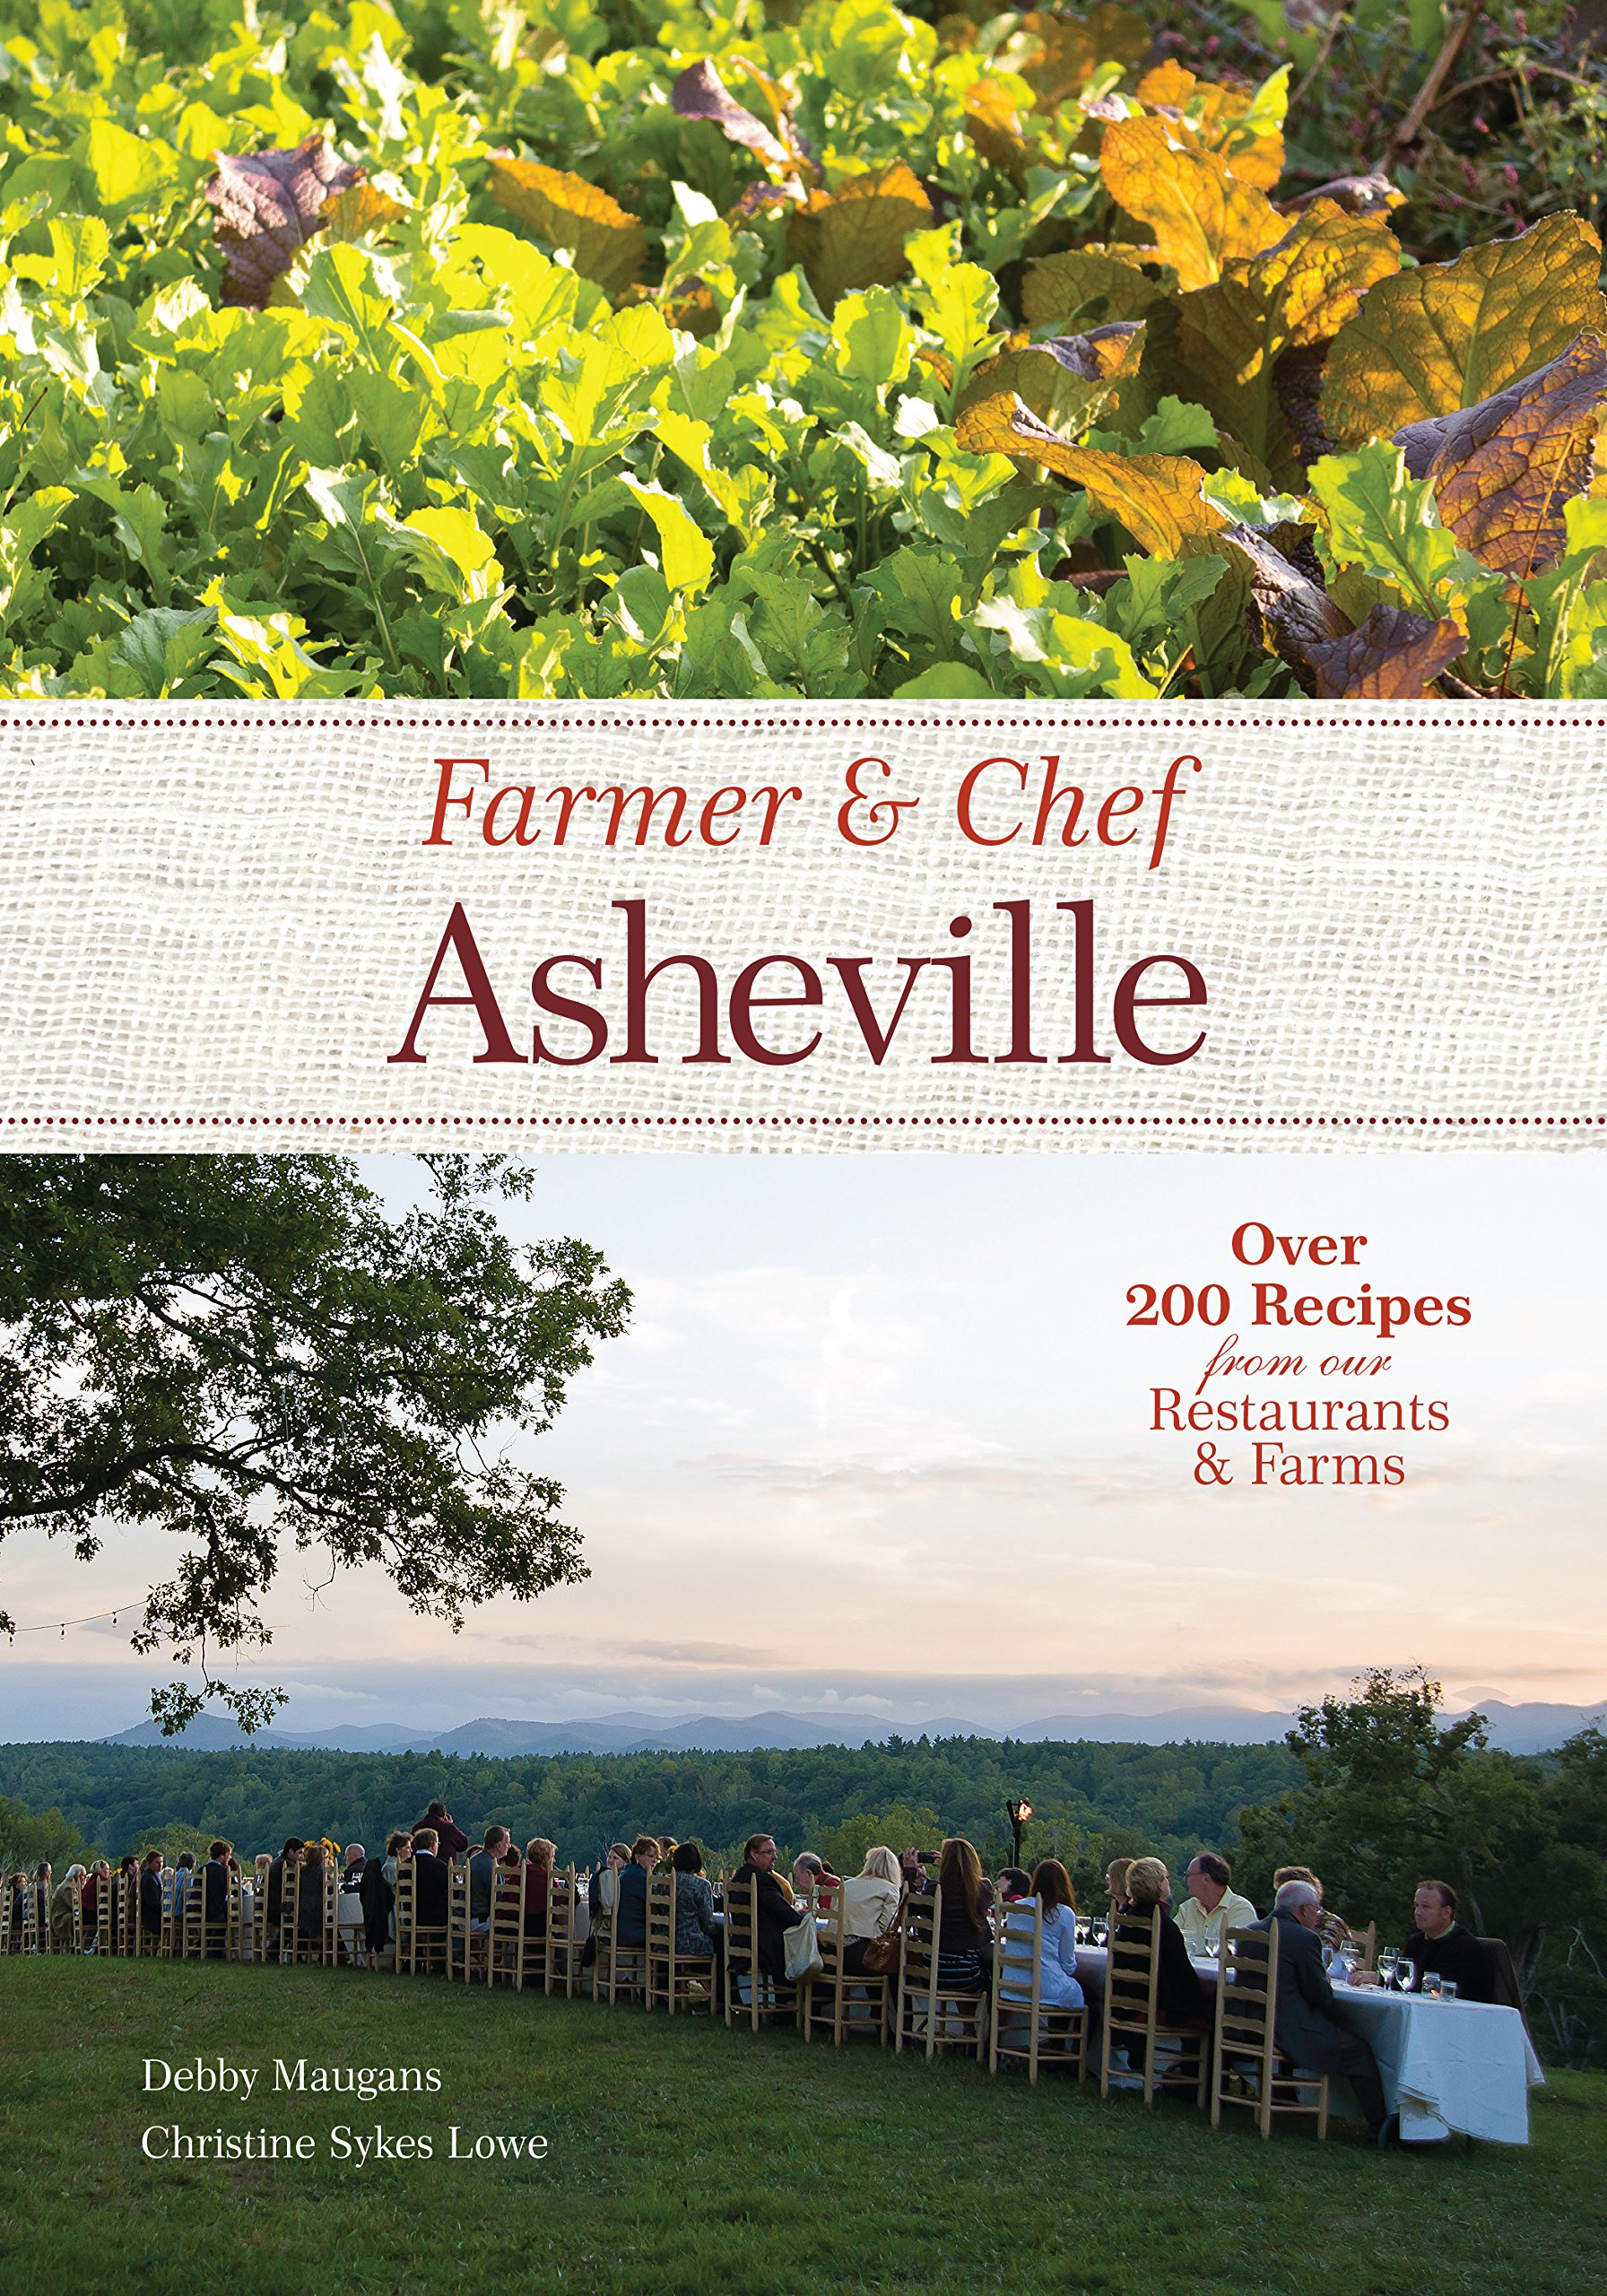 Farmer & Chef Asheville pdf